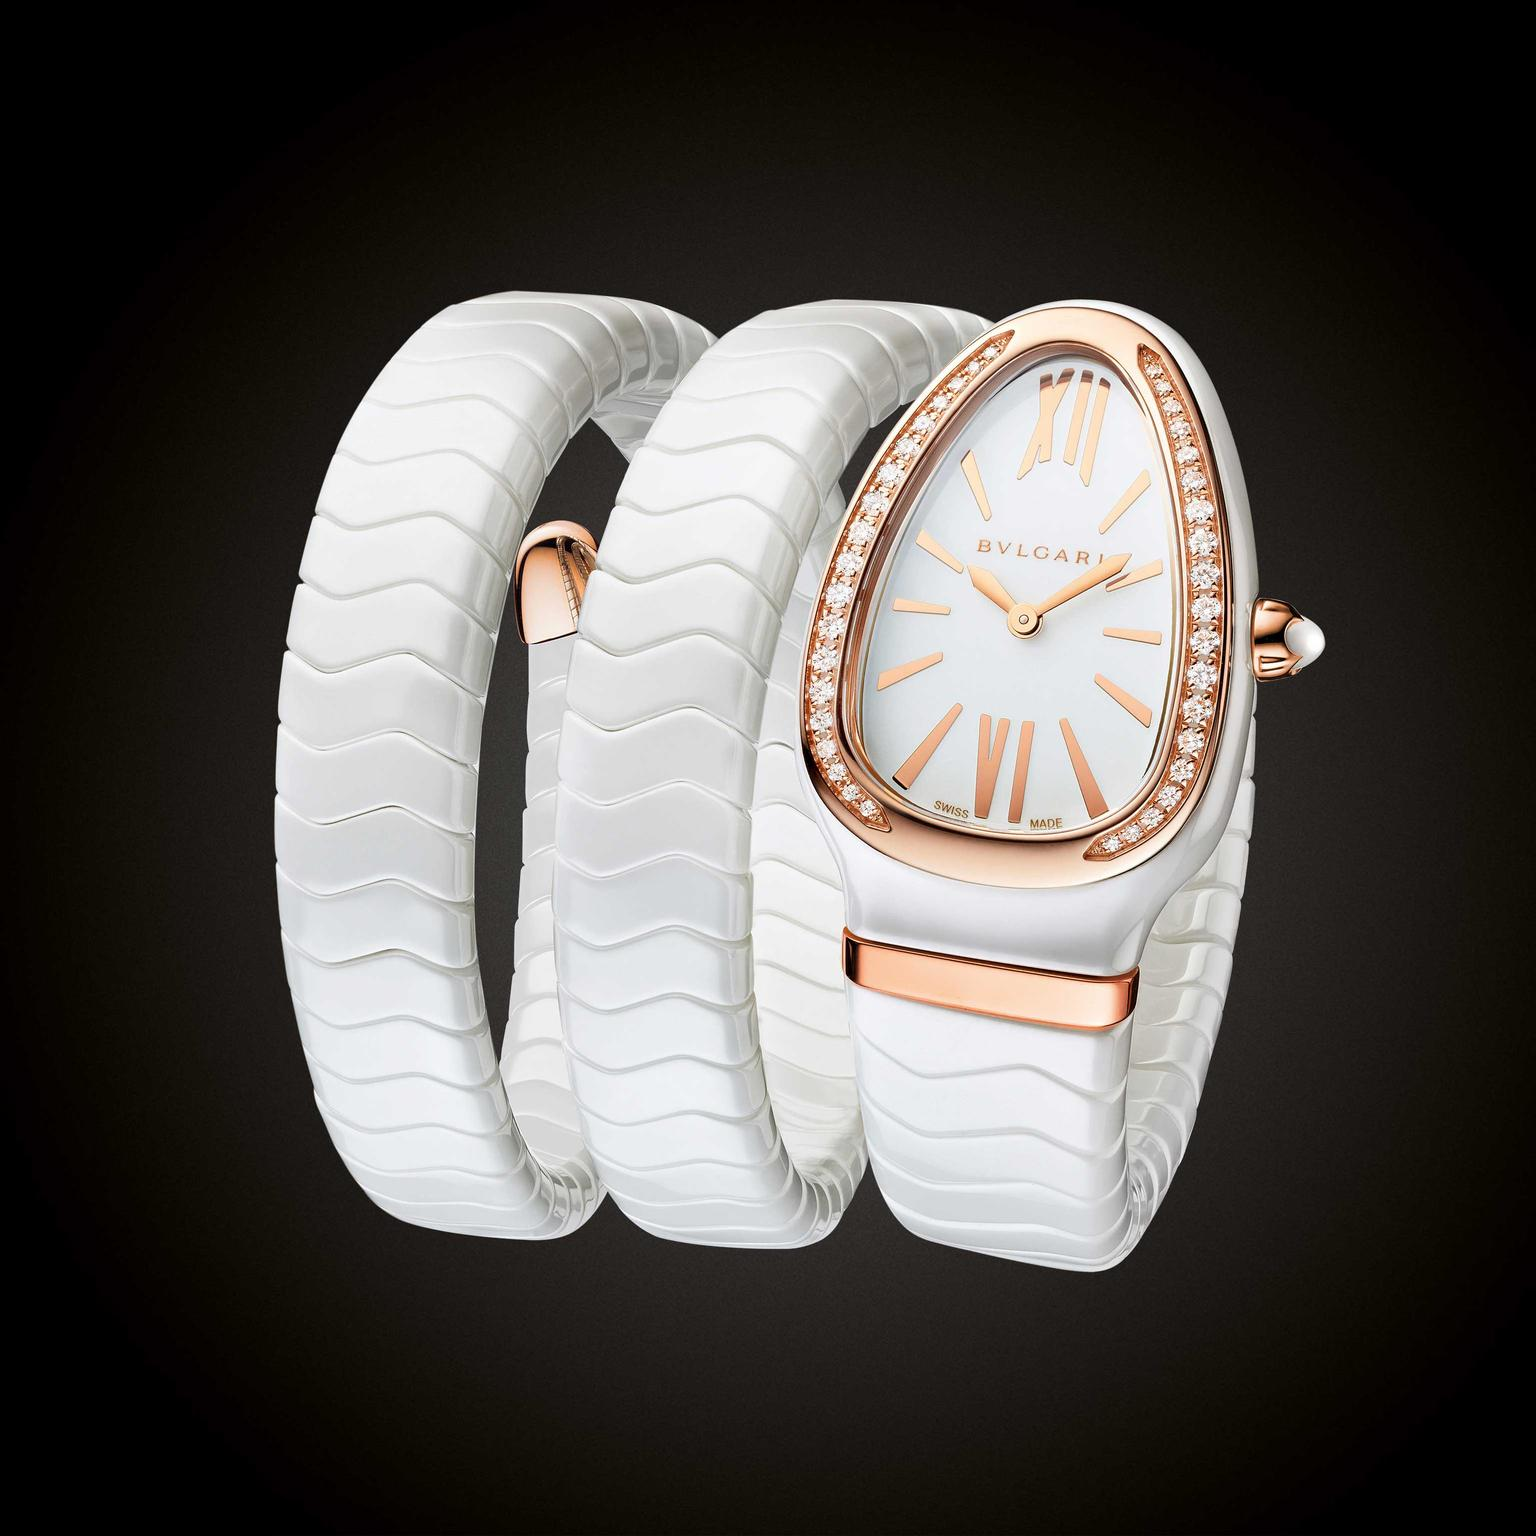 Bulgari's Serpenti Spiga Ceramica double coil white ceramic ladies watch